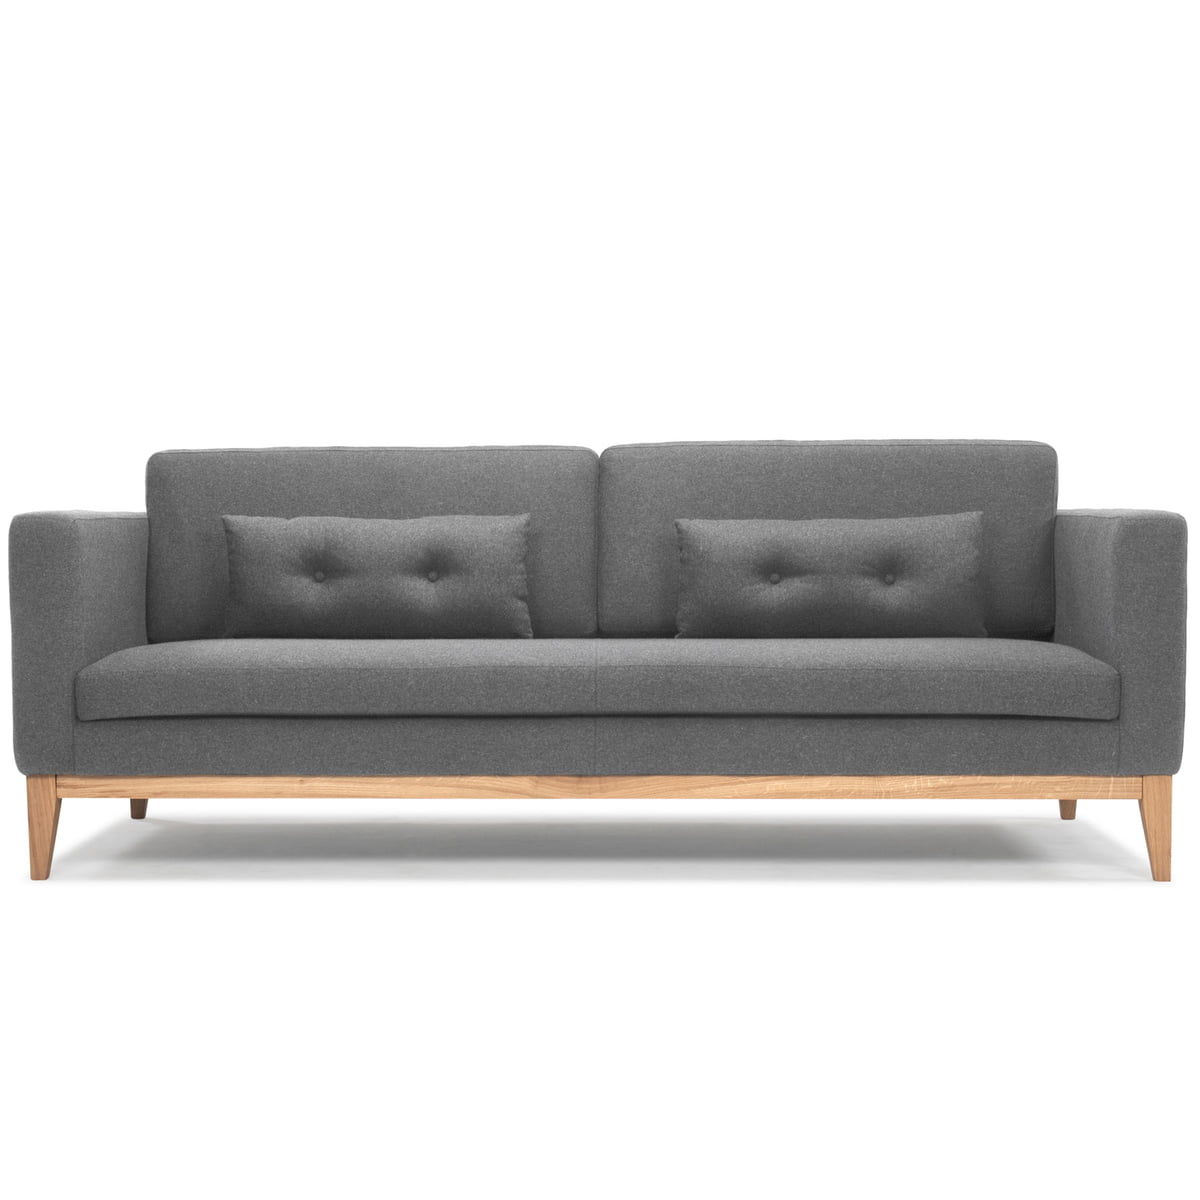 Attirant The Day Sofa By Design House Stockholm In Light Grey